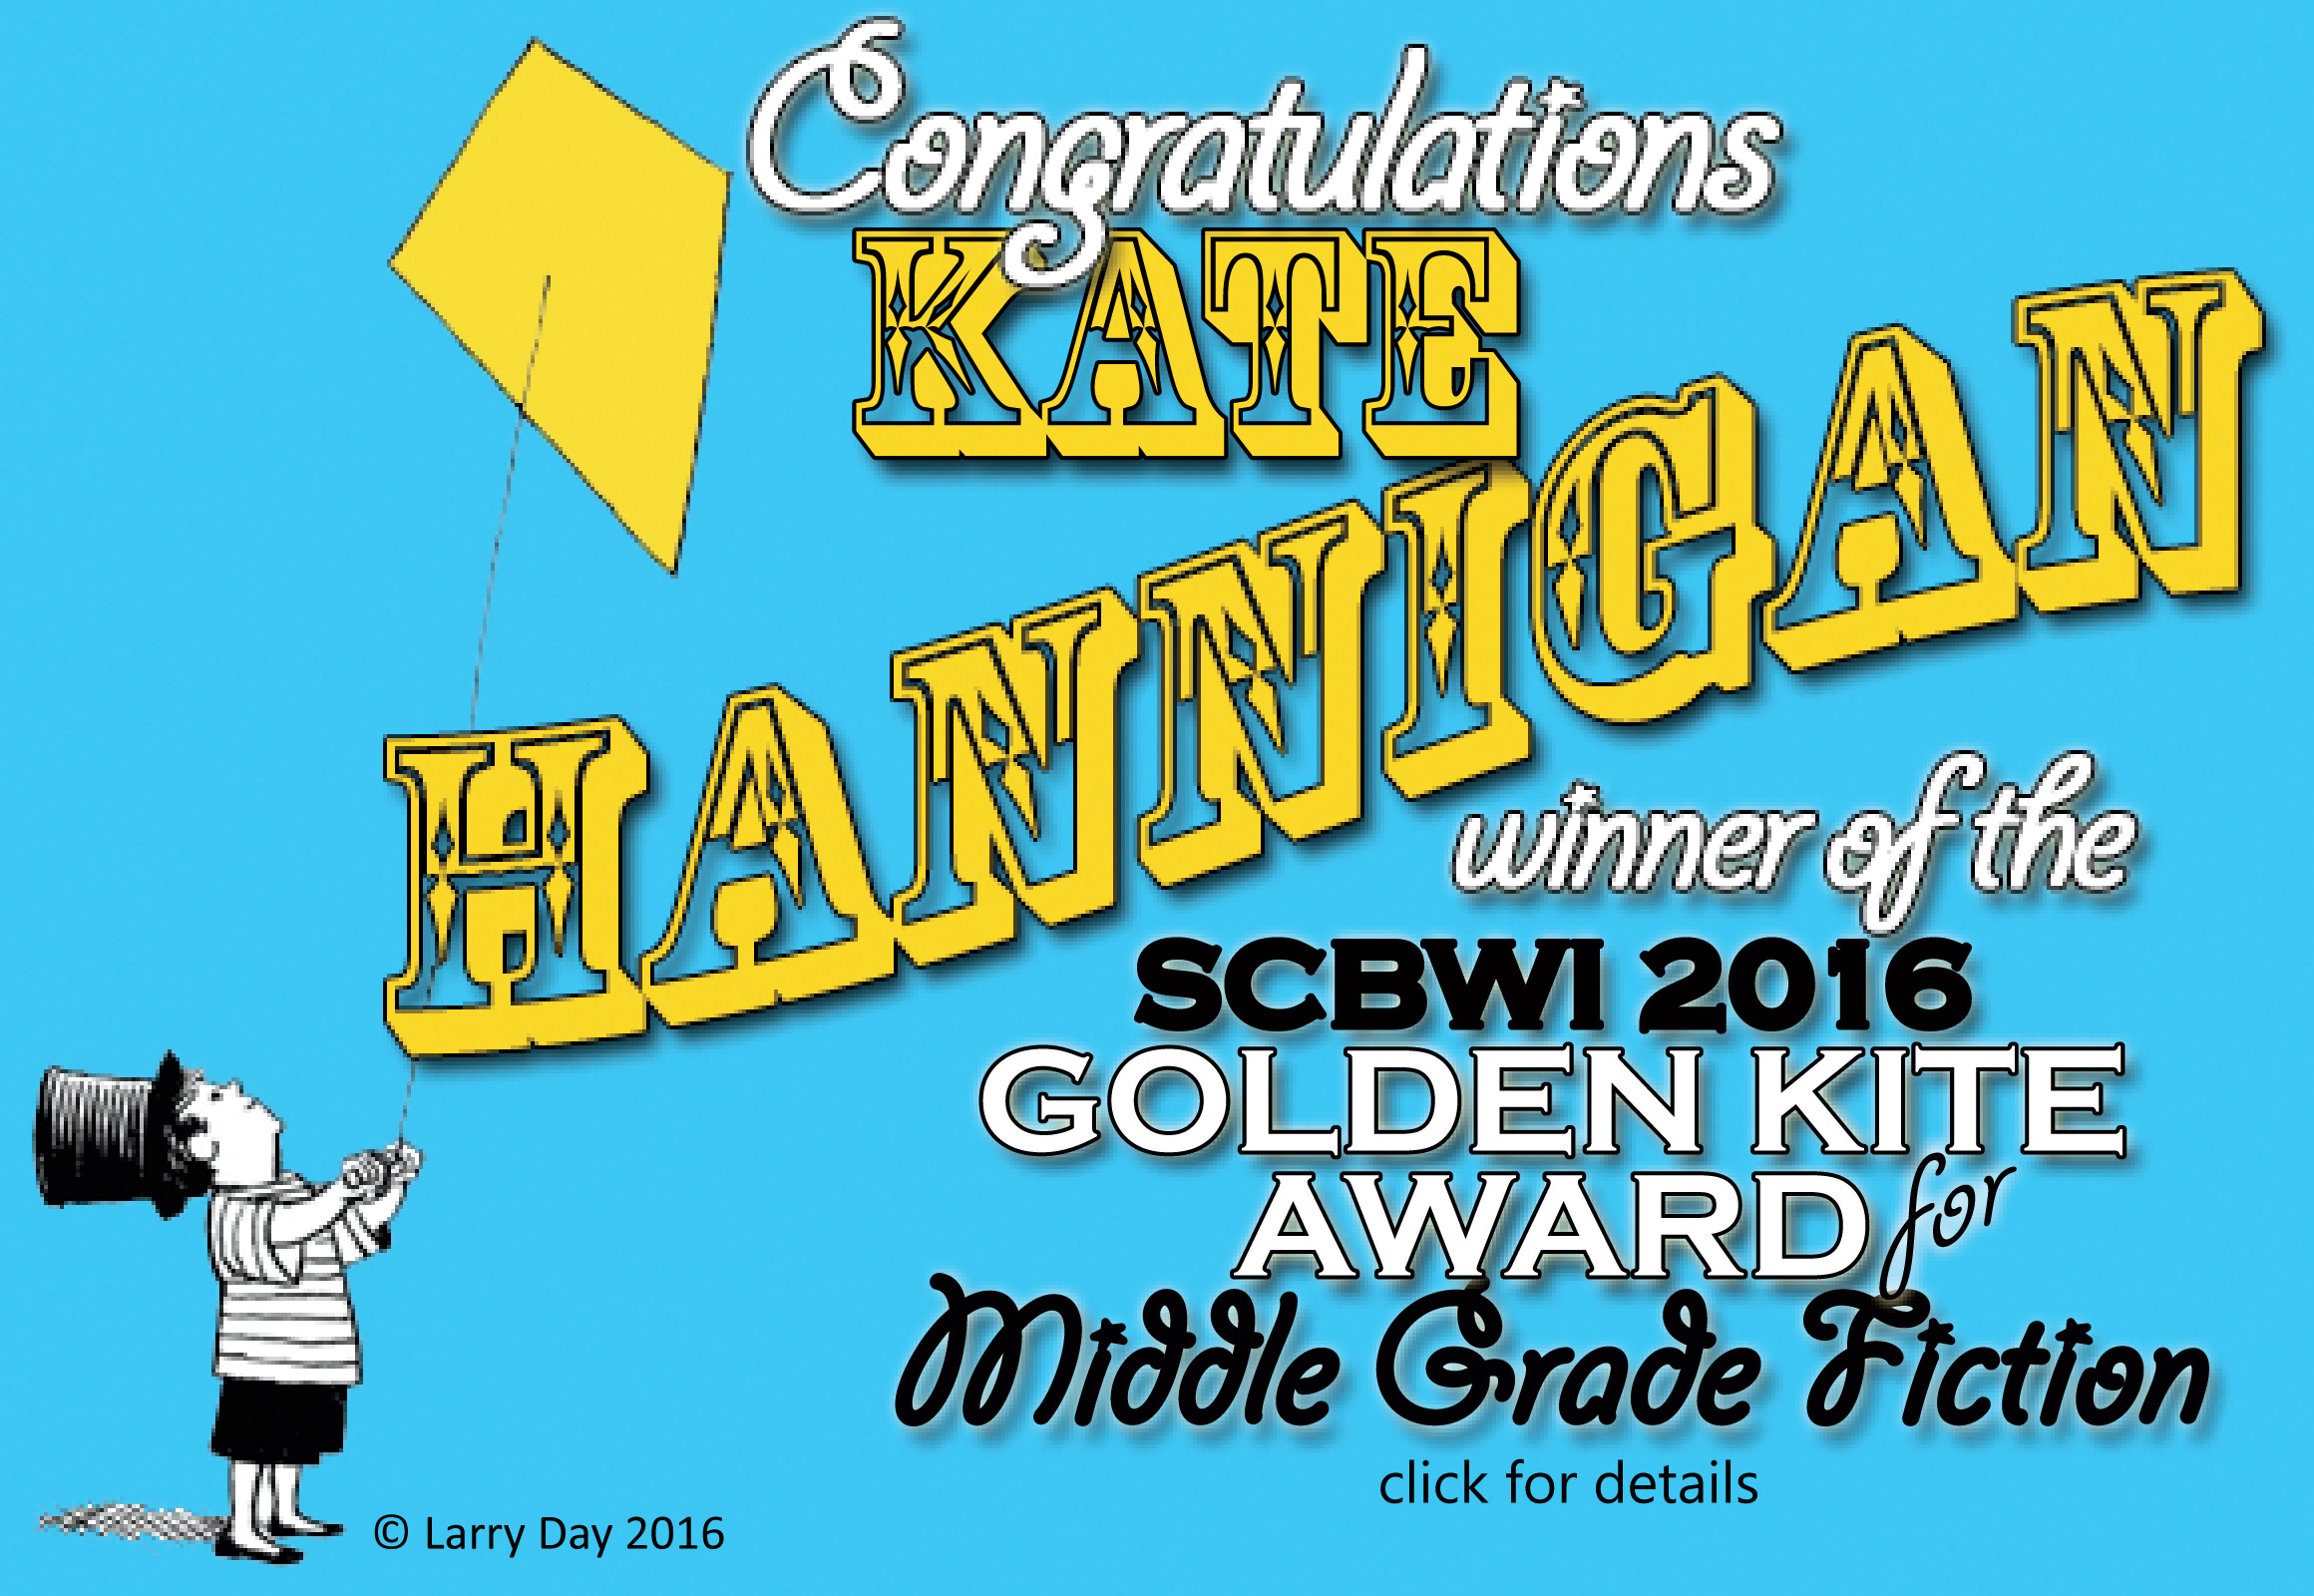 Congratulations Kate Hannigan, winner of the 2016 Golden Kite Award for Middle Grade/Young Reader Fiction:https://www.scbwi.org/2016-golden-kite-award-winners/for her novel, The Detective's Assistant (Little/Brown, 2015)